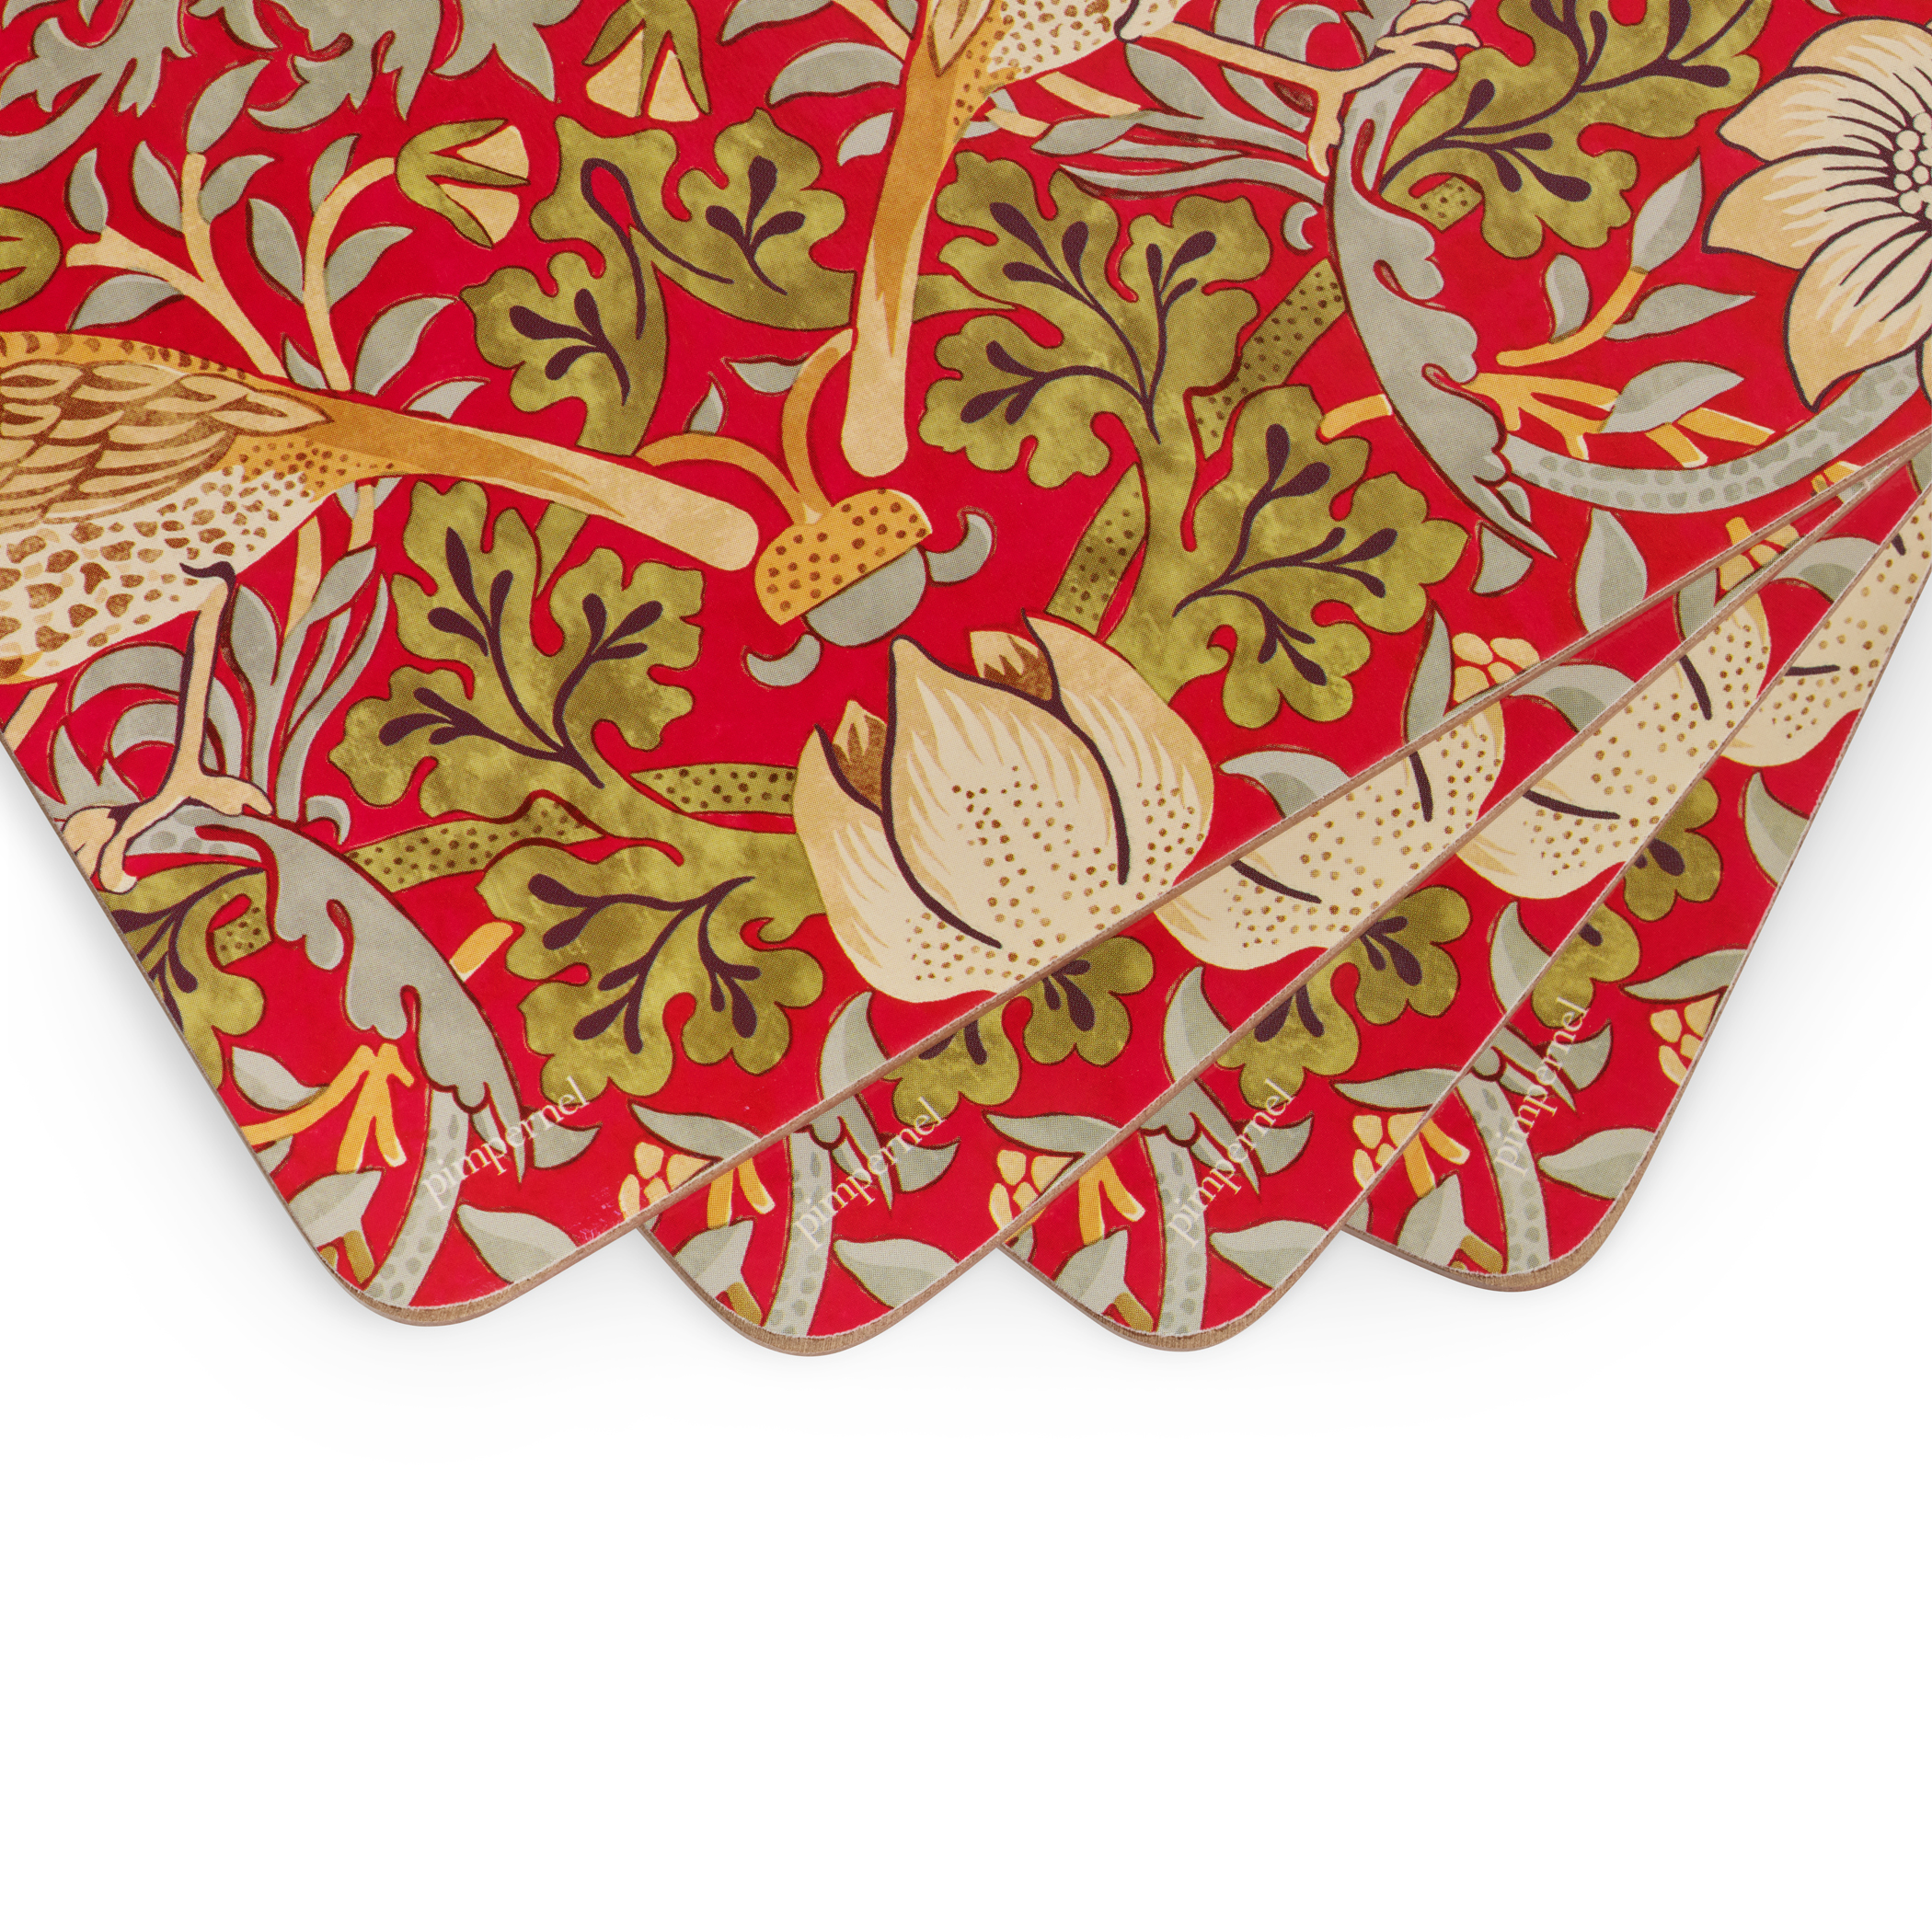 Morris and Co for Pimpernel Strawberry Thief Red Placemats Set of 4 image number 1